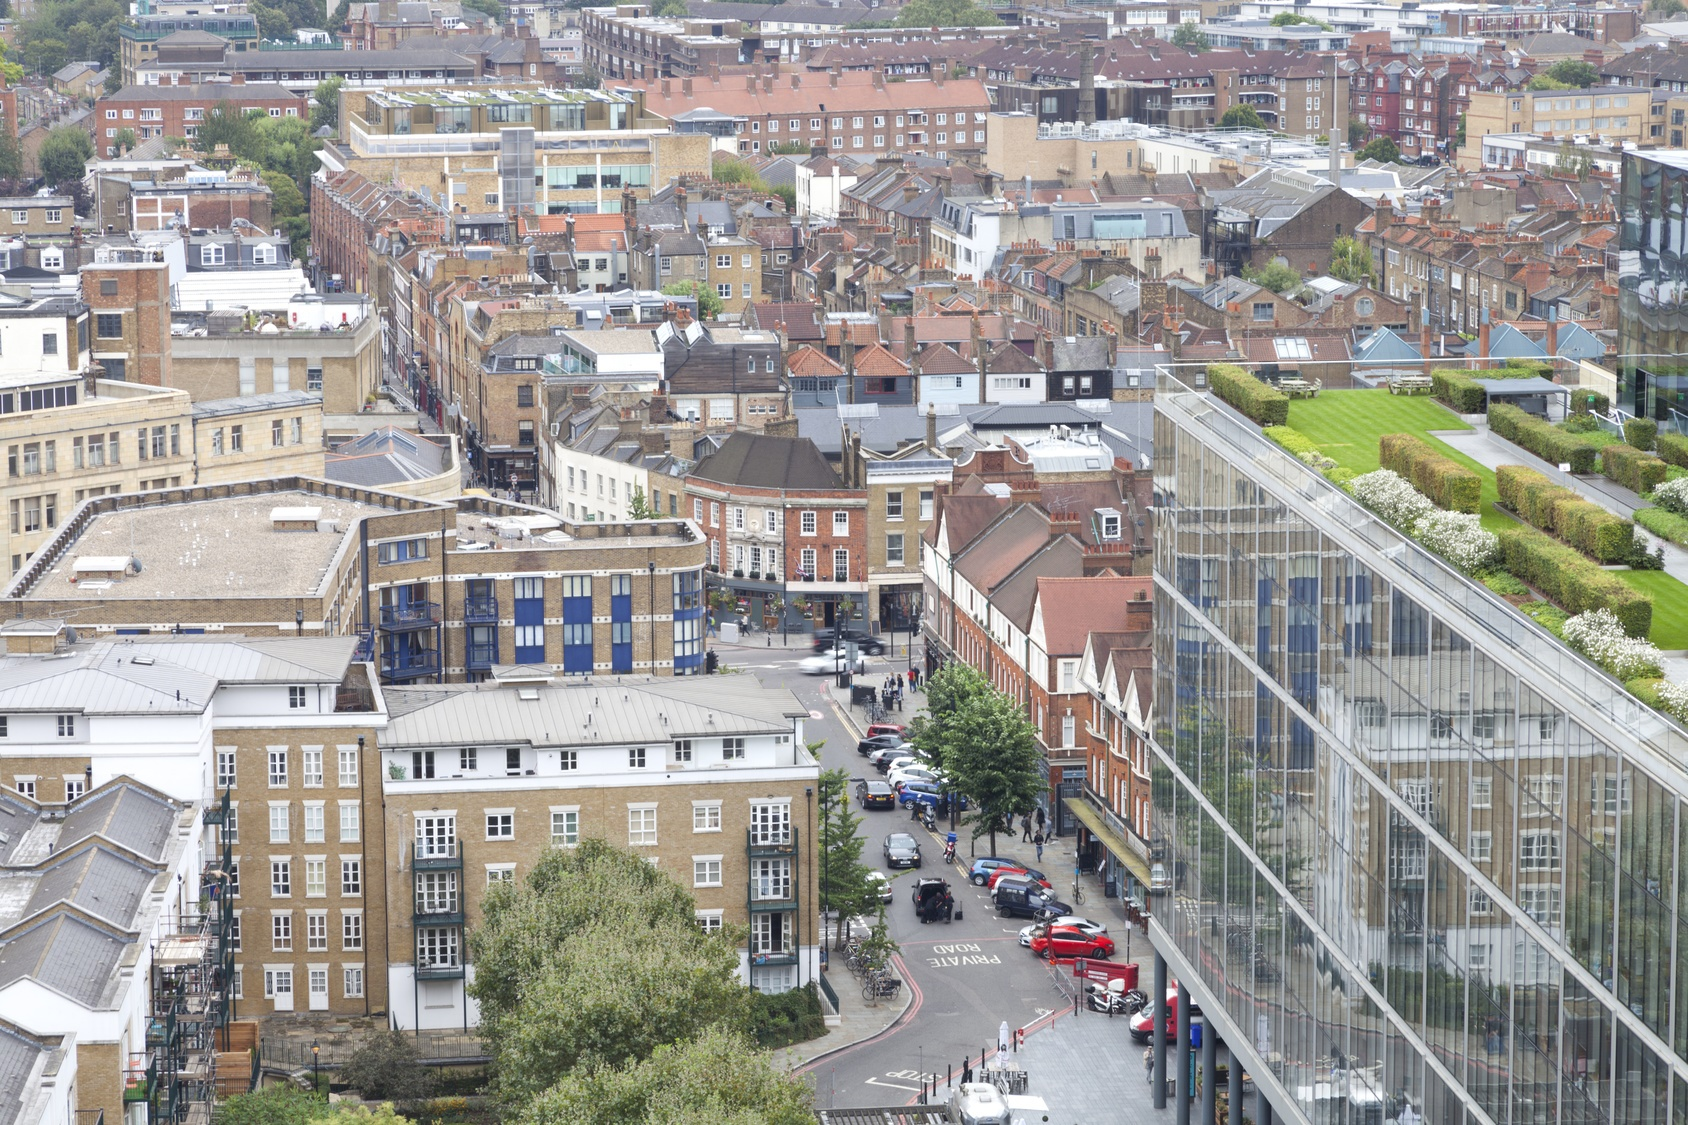 Aerial view of east London busy urban district with densely built up houses, shops, offices